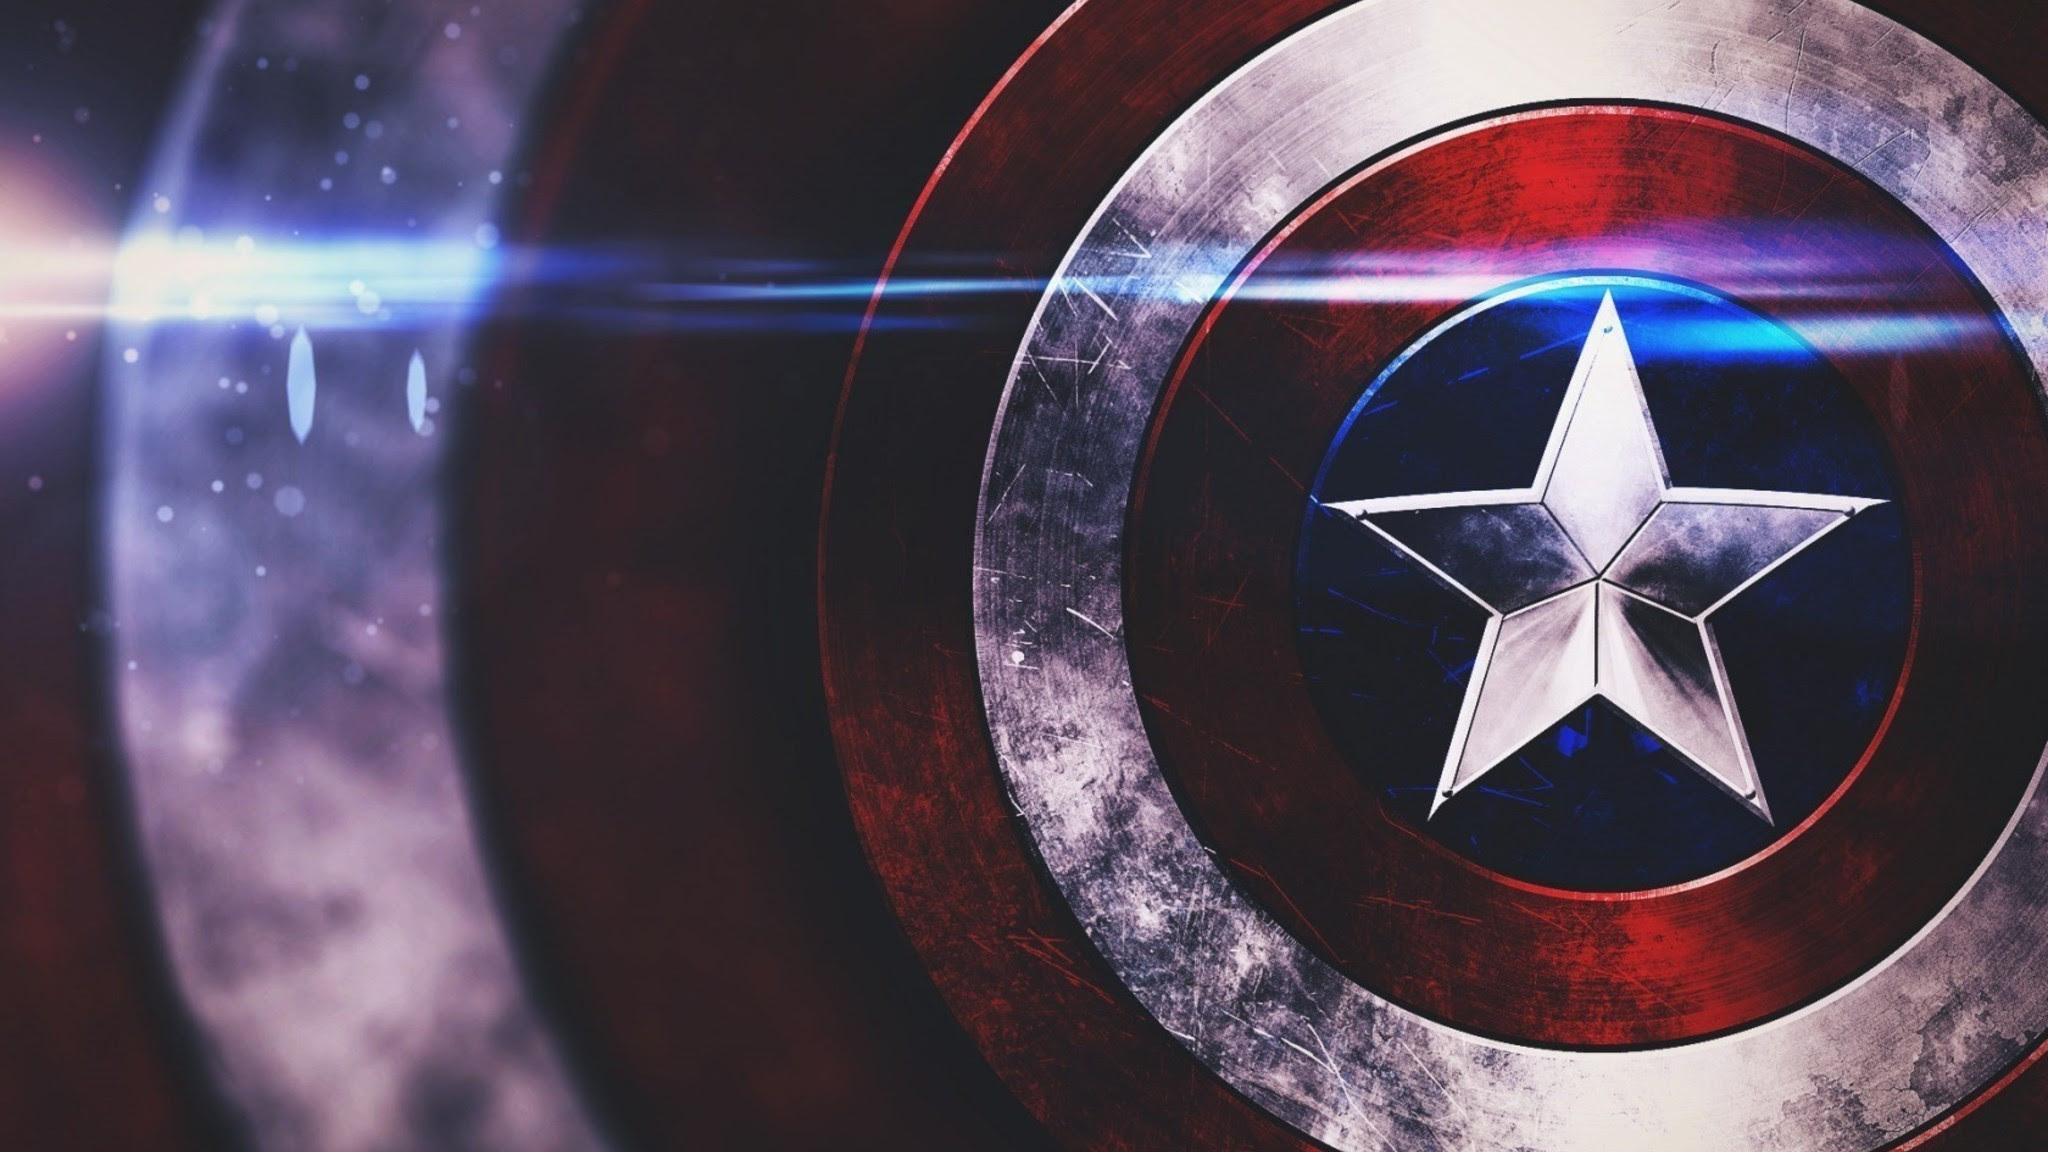 4K Captain America Wallpaper 62  images